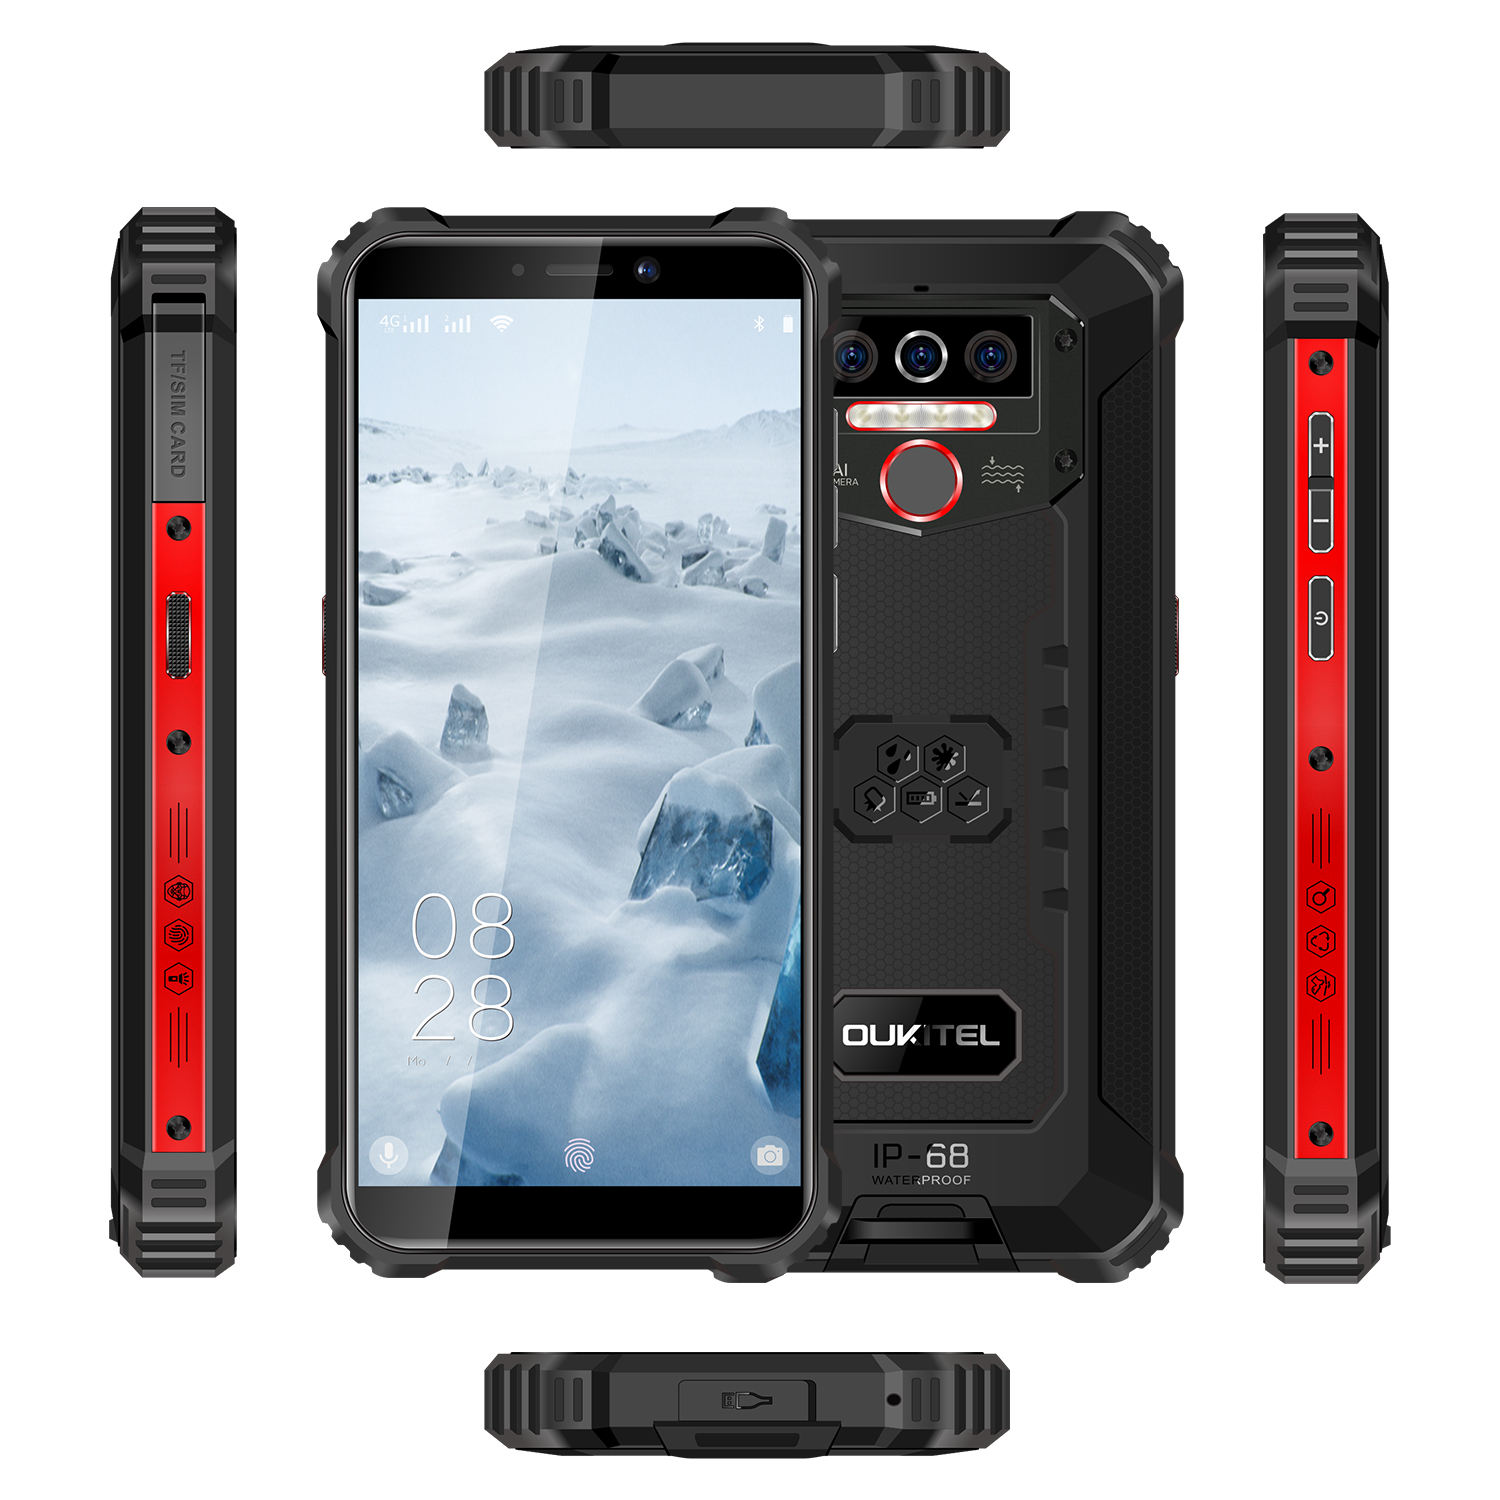 OUKITEL WP5 5.5 inch Rugged Mobile phone Android 9.0 Waterproof Shockproof Dustproof smartphone with 4 Camera 4 LED Flash Light